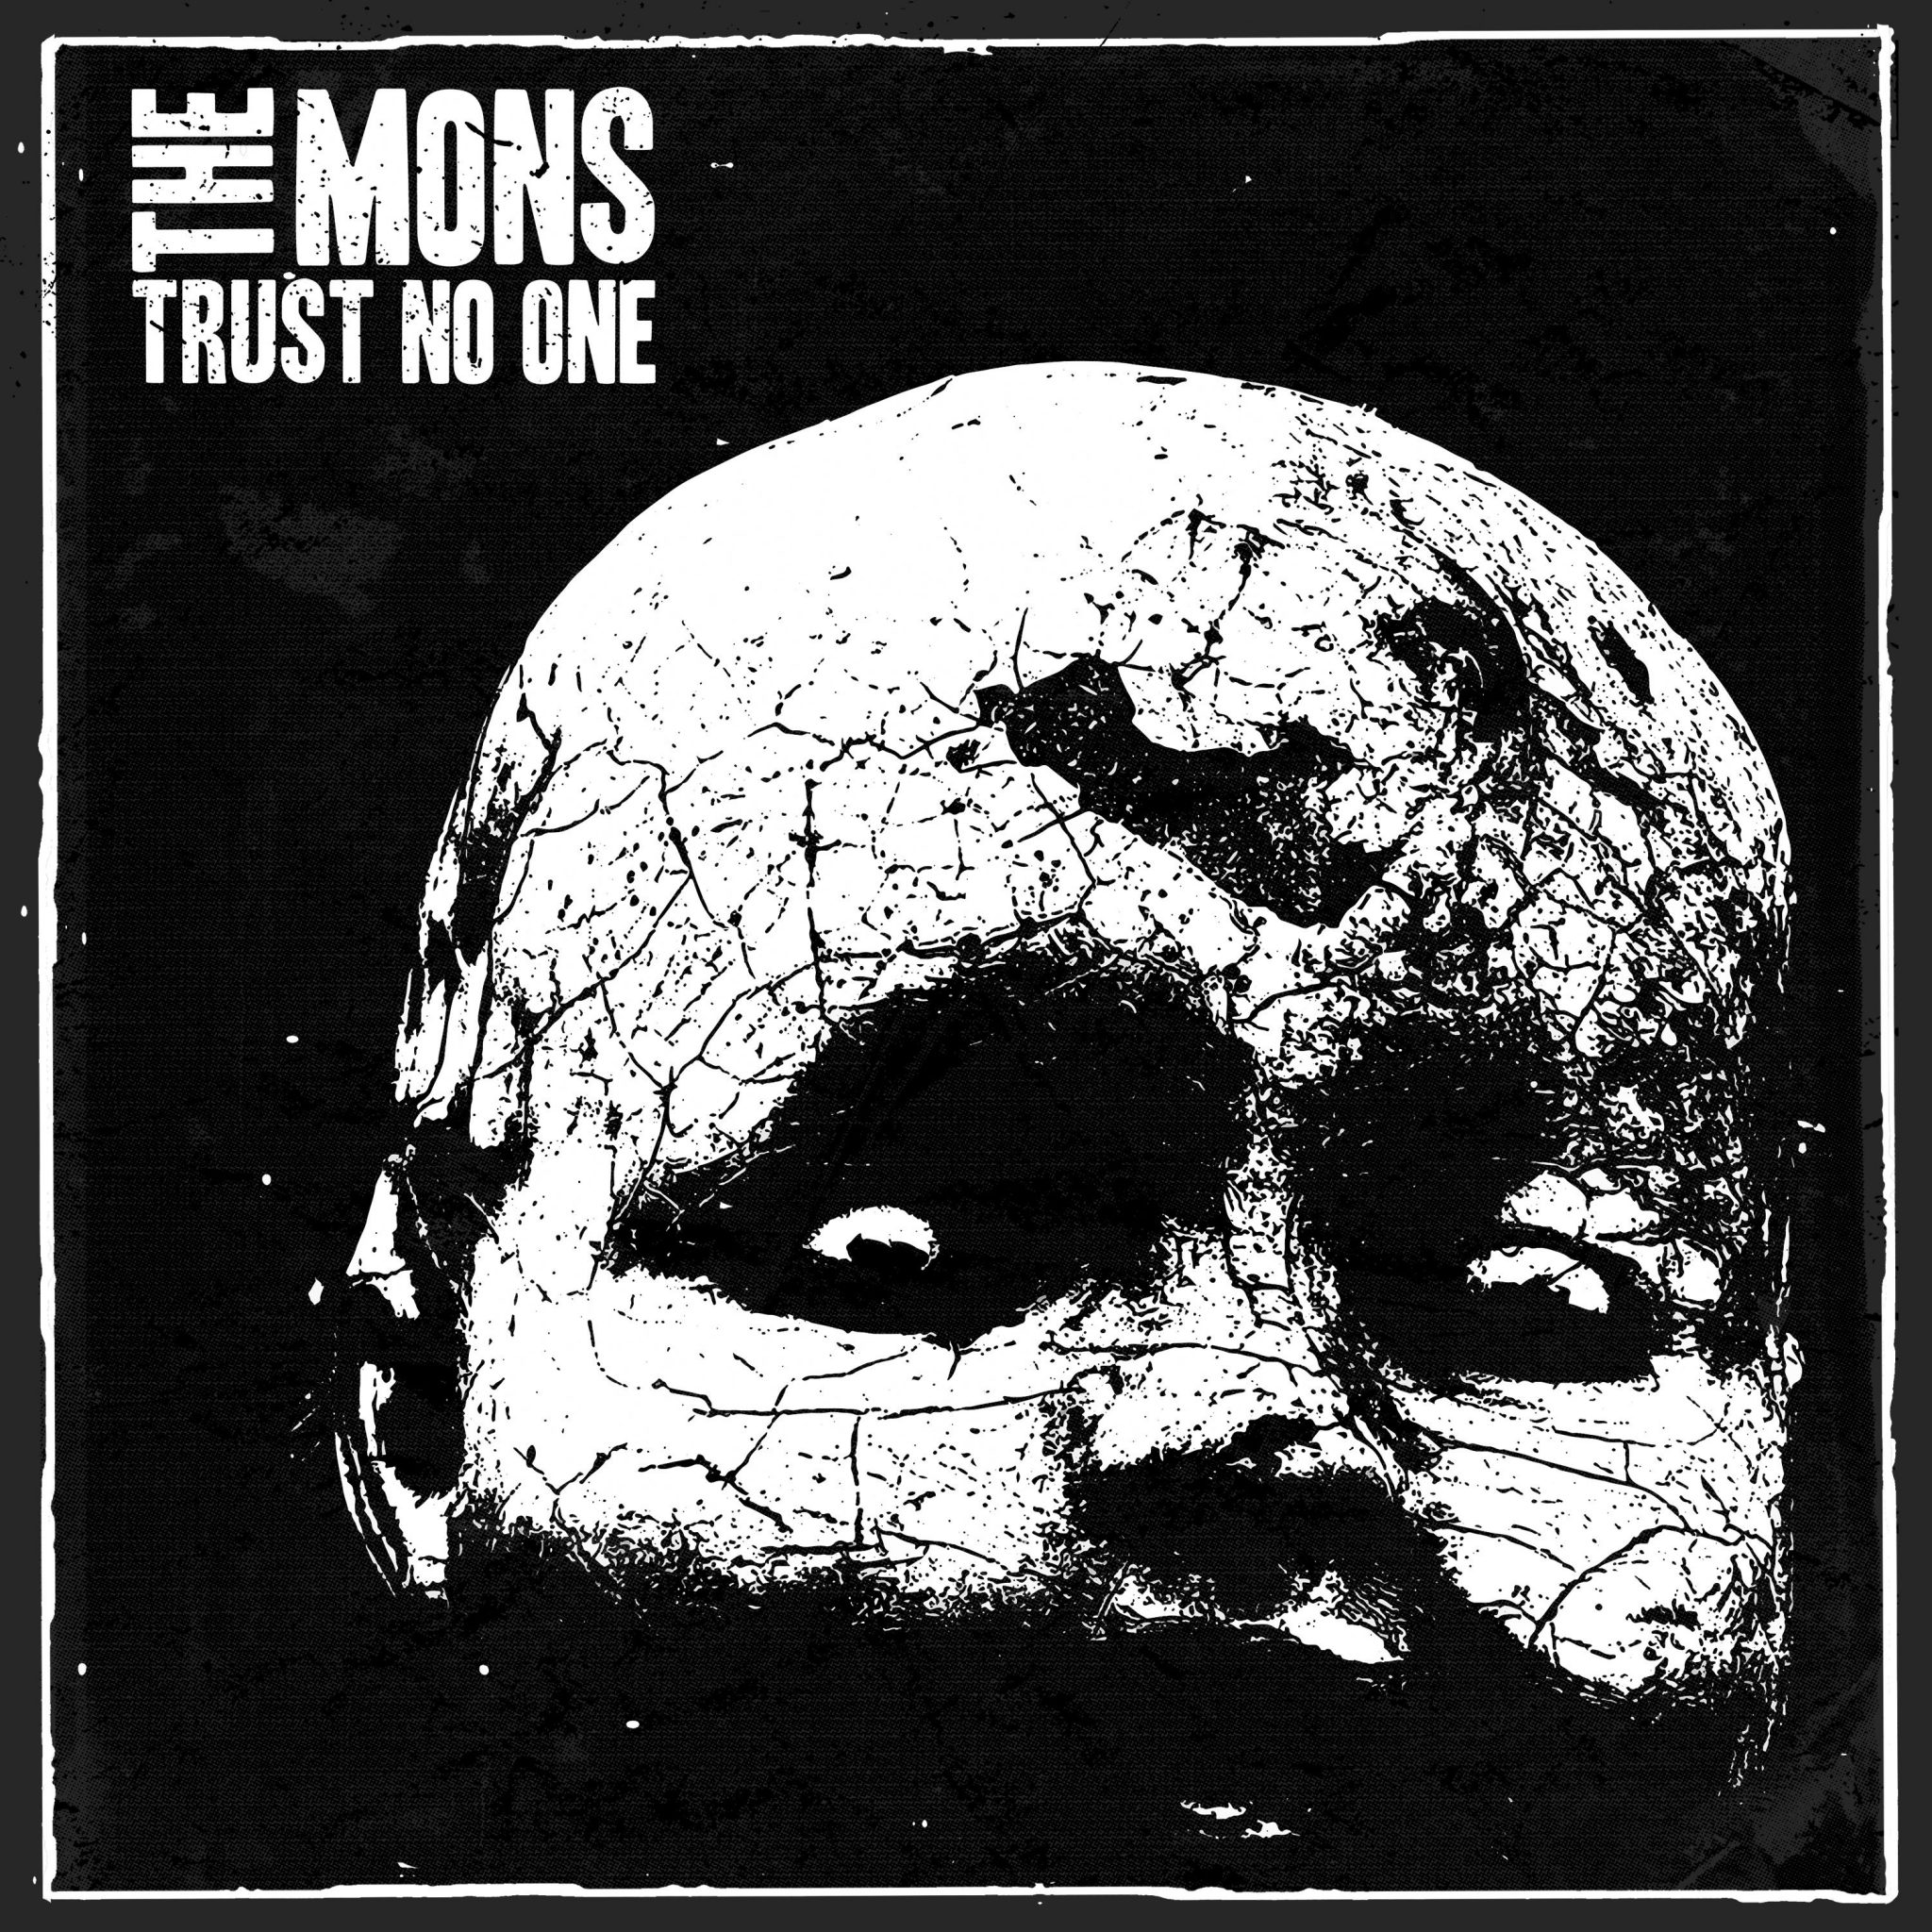 The Mons Trust No One